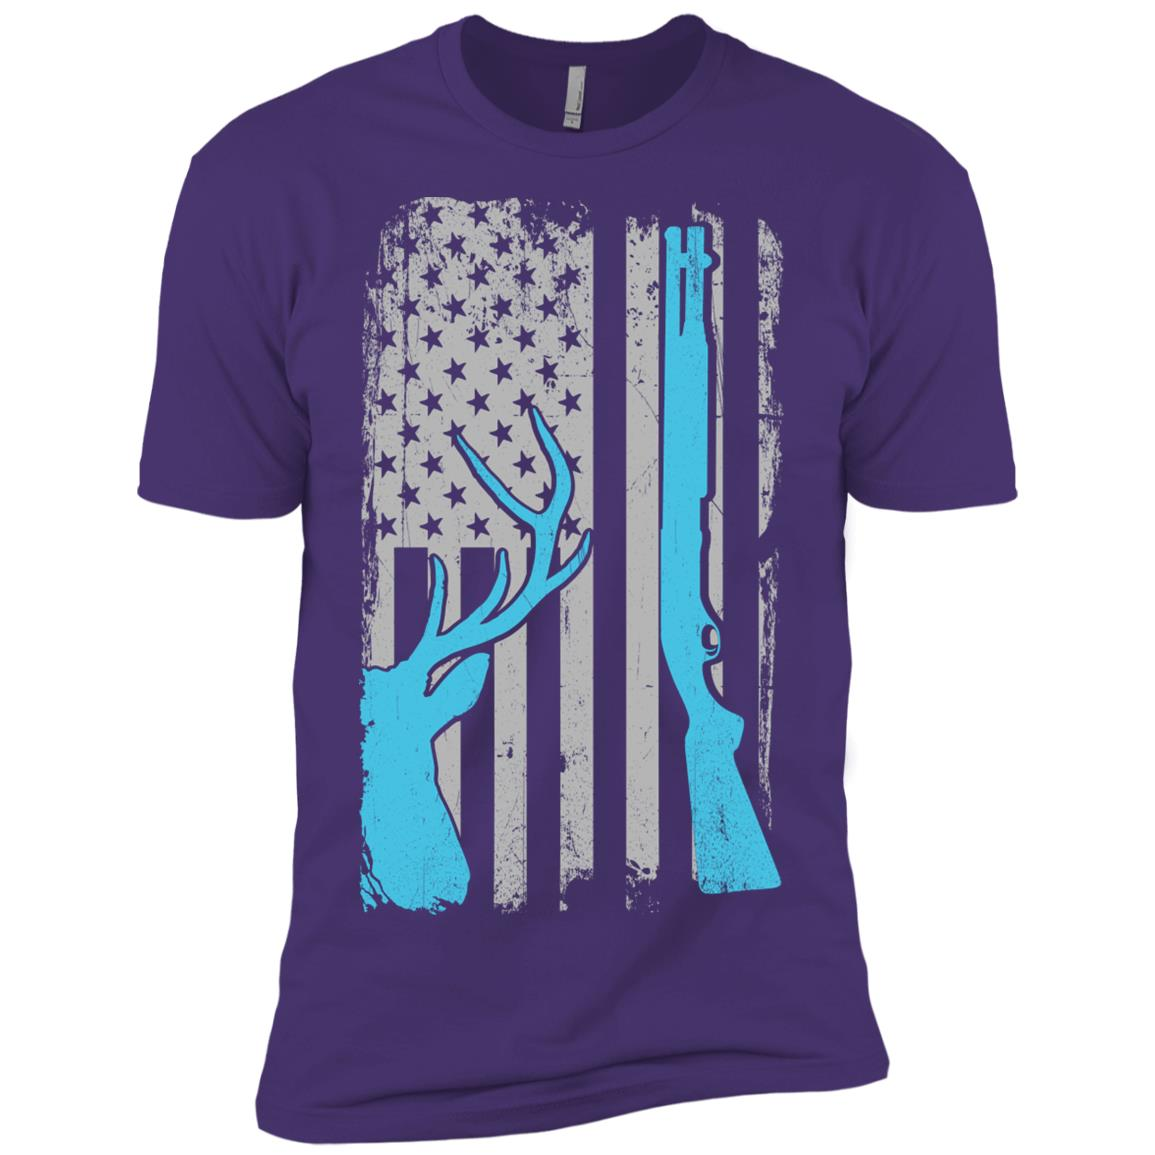 Shotgun Hunting – Whitetail Hunt Us Flag Men Short Sleeve T-Shirt